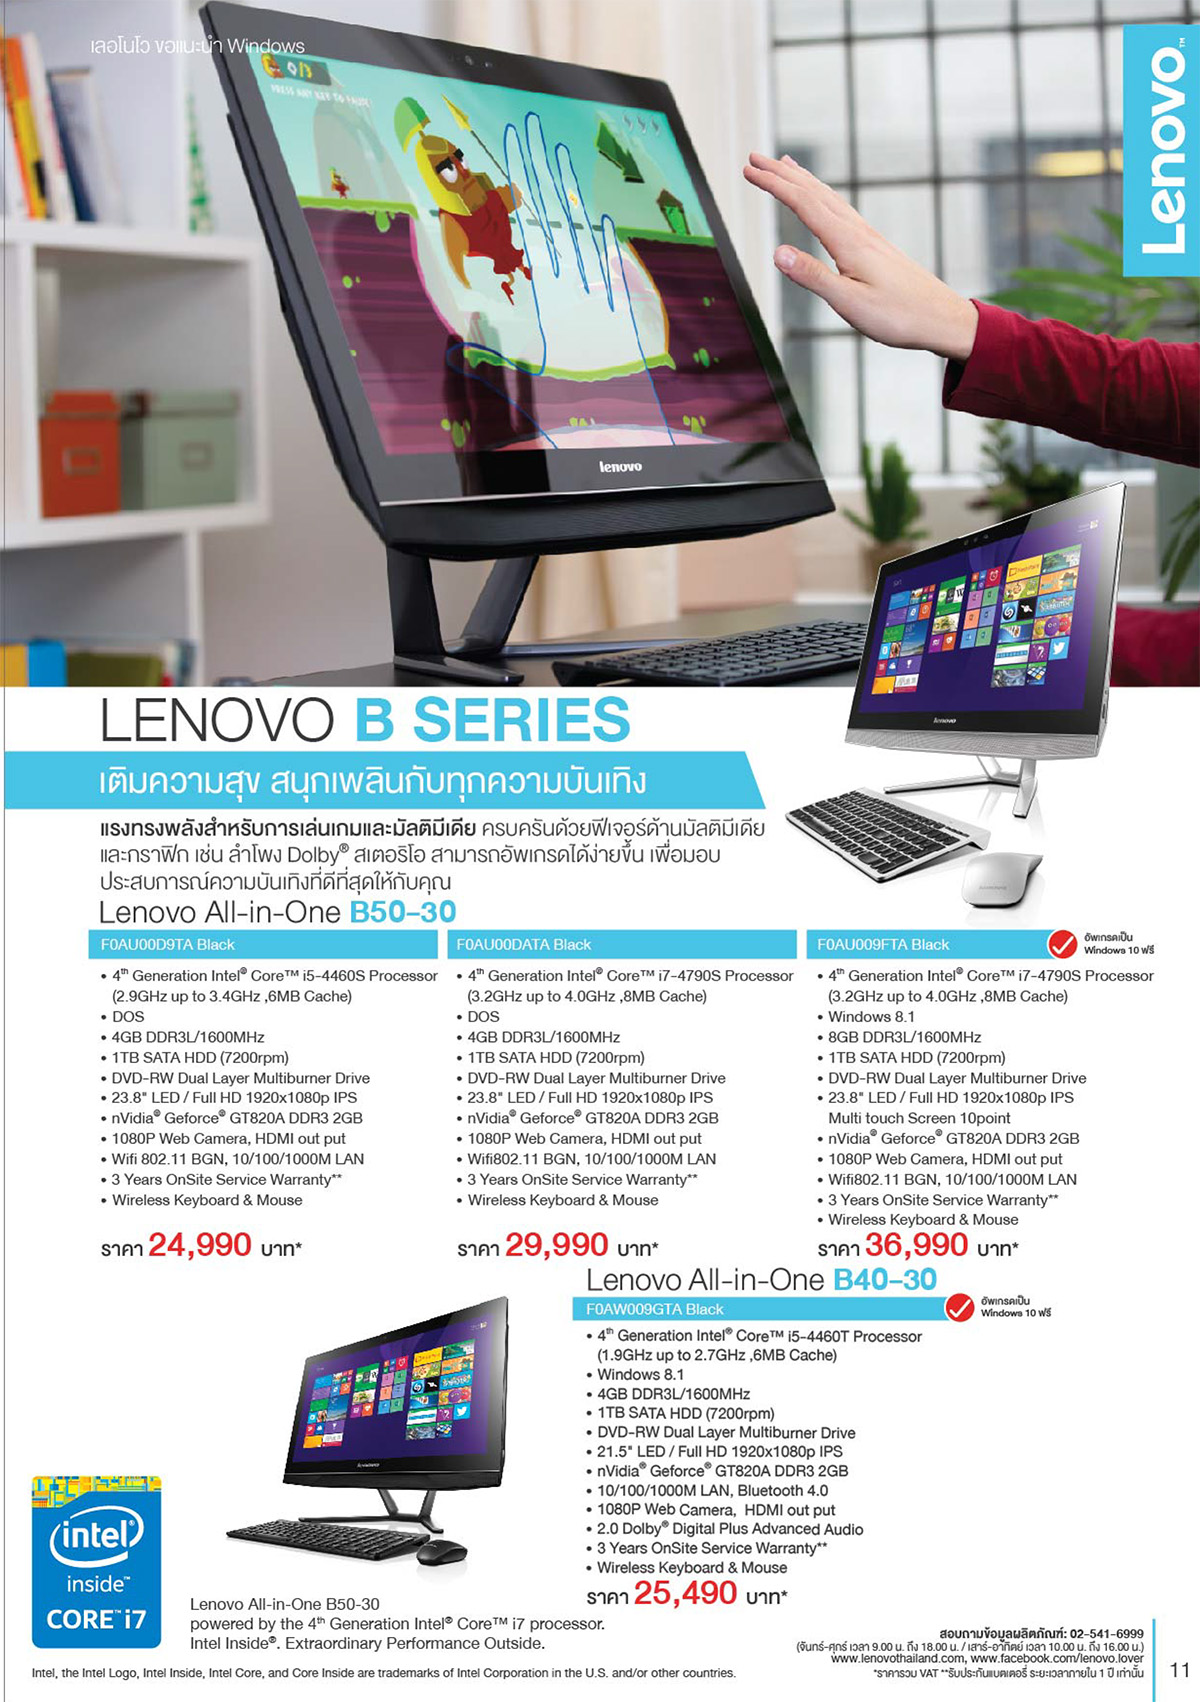 Lenovo Consumer Product Catalog Q2FY15_Final AW-11